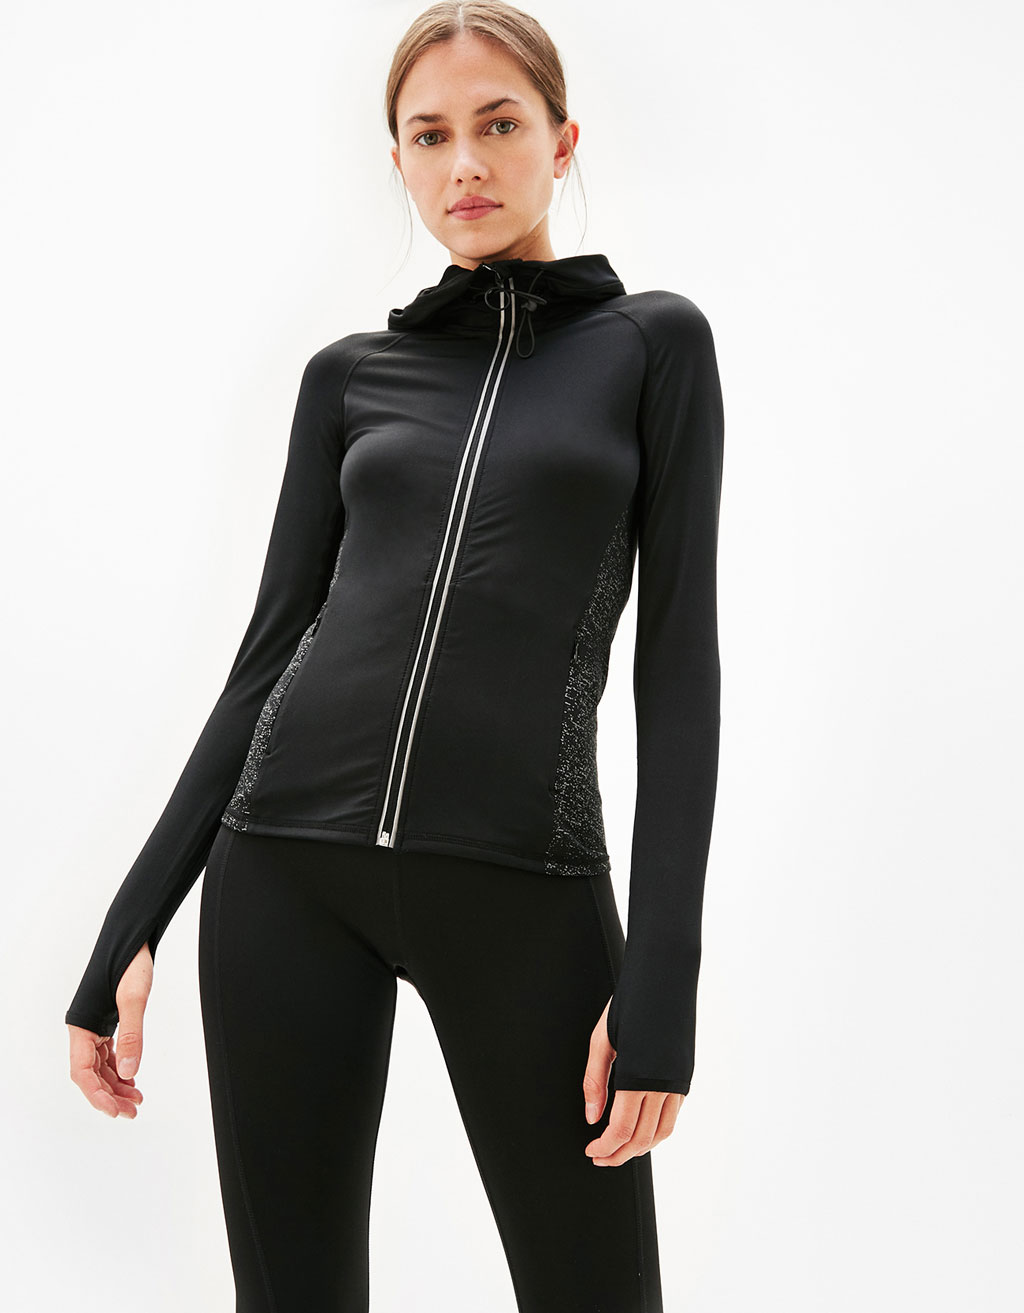 Technical sports jacket with hood and reflective print